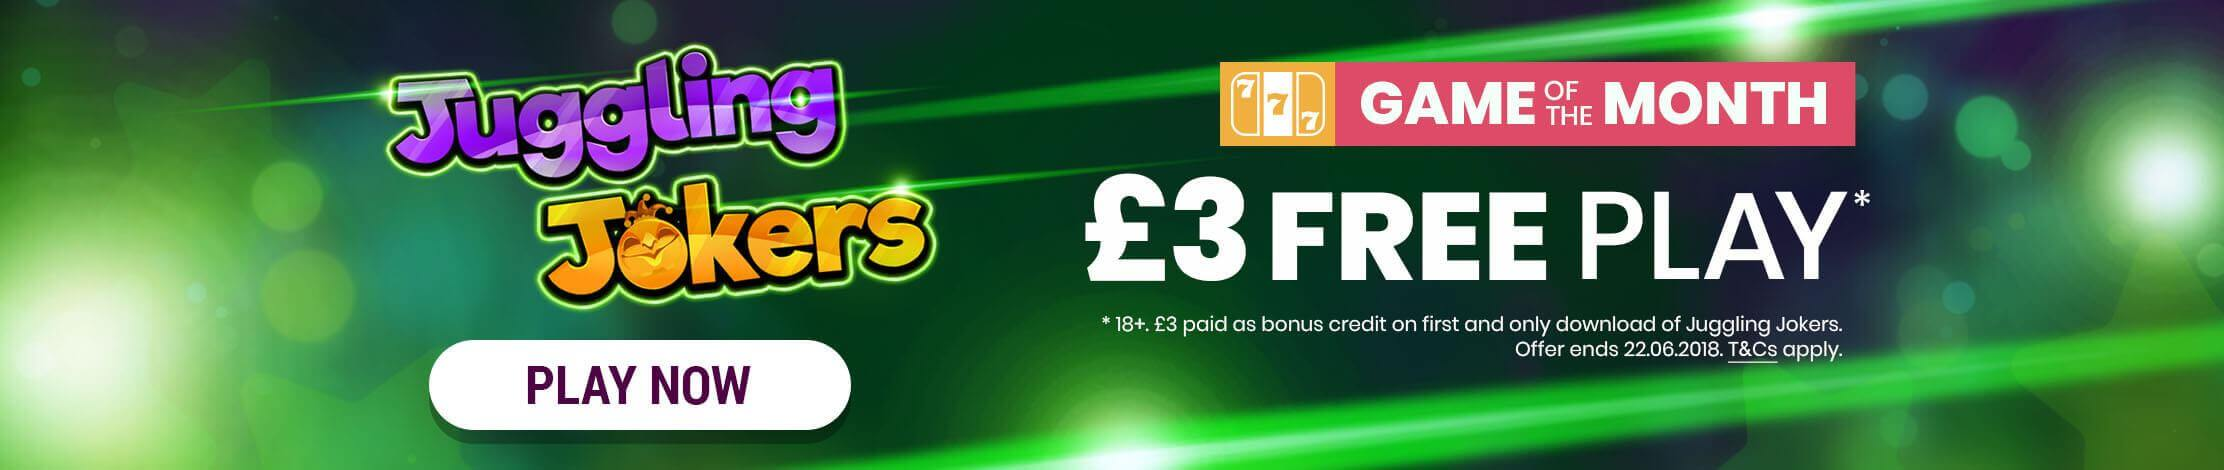 Juggling Jokers. Online slots game with £5 welcome bonus. Win up to 30 Free Spins